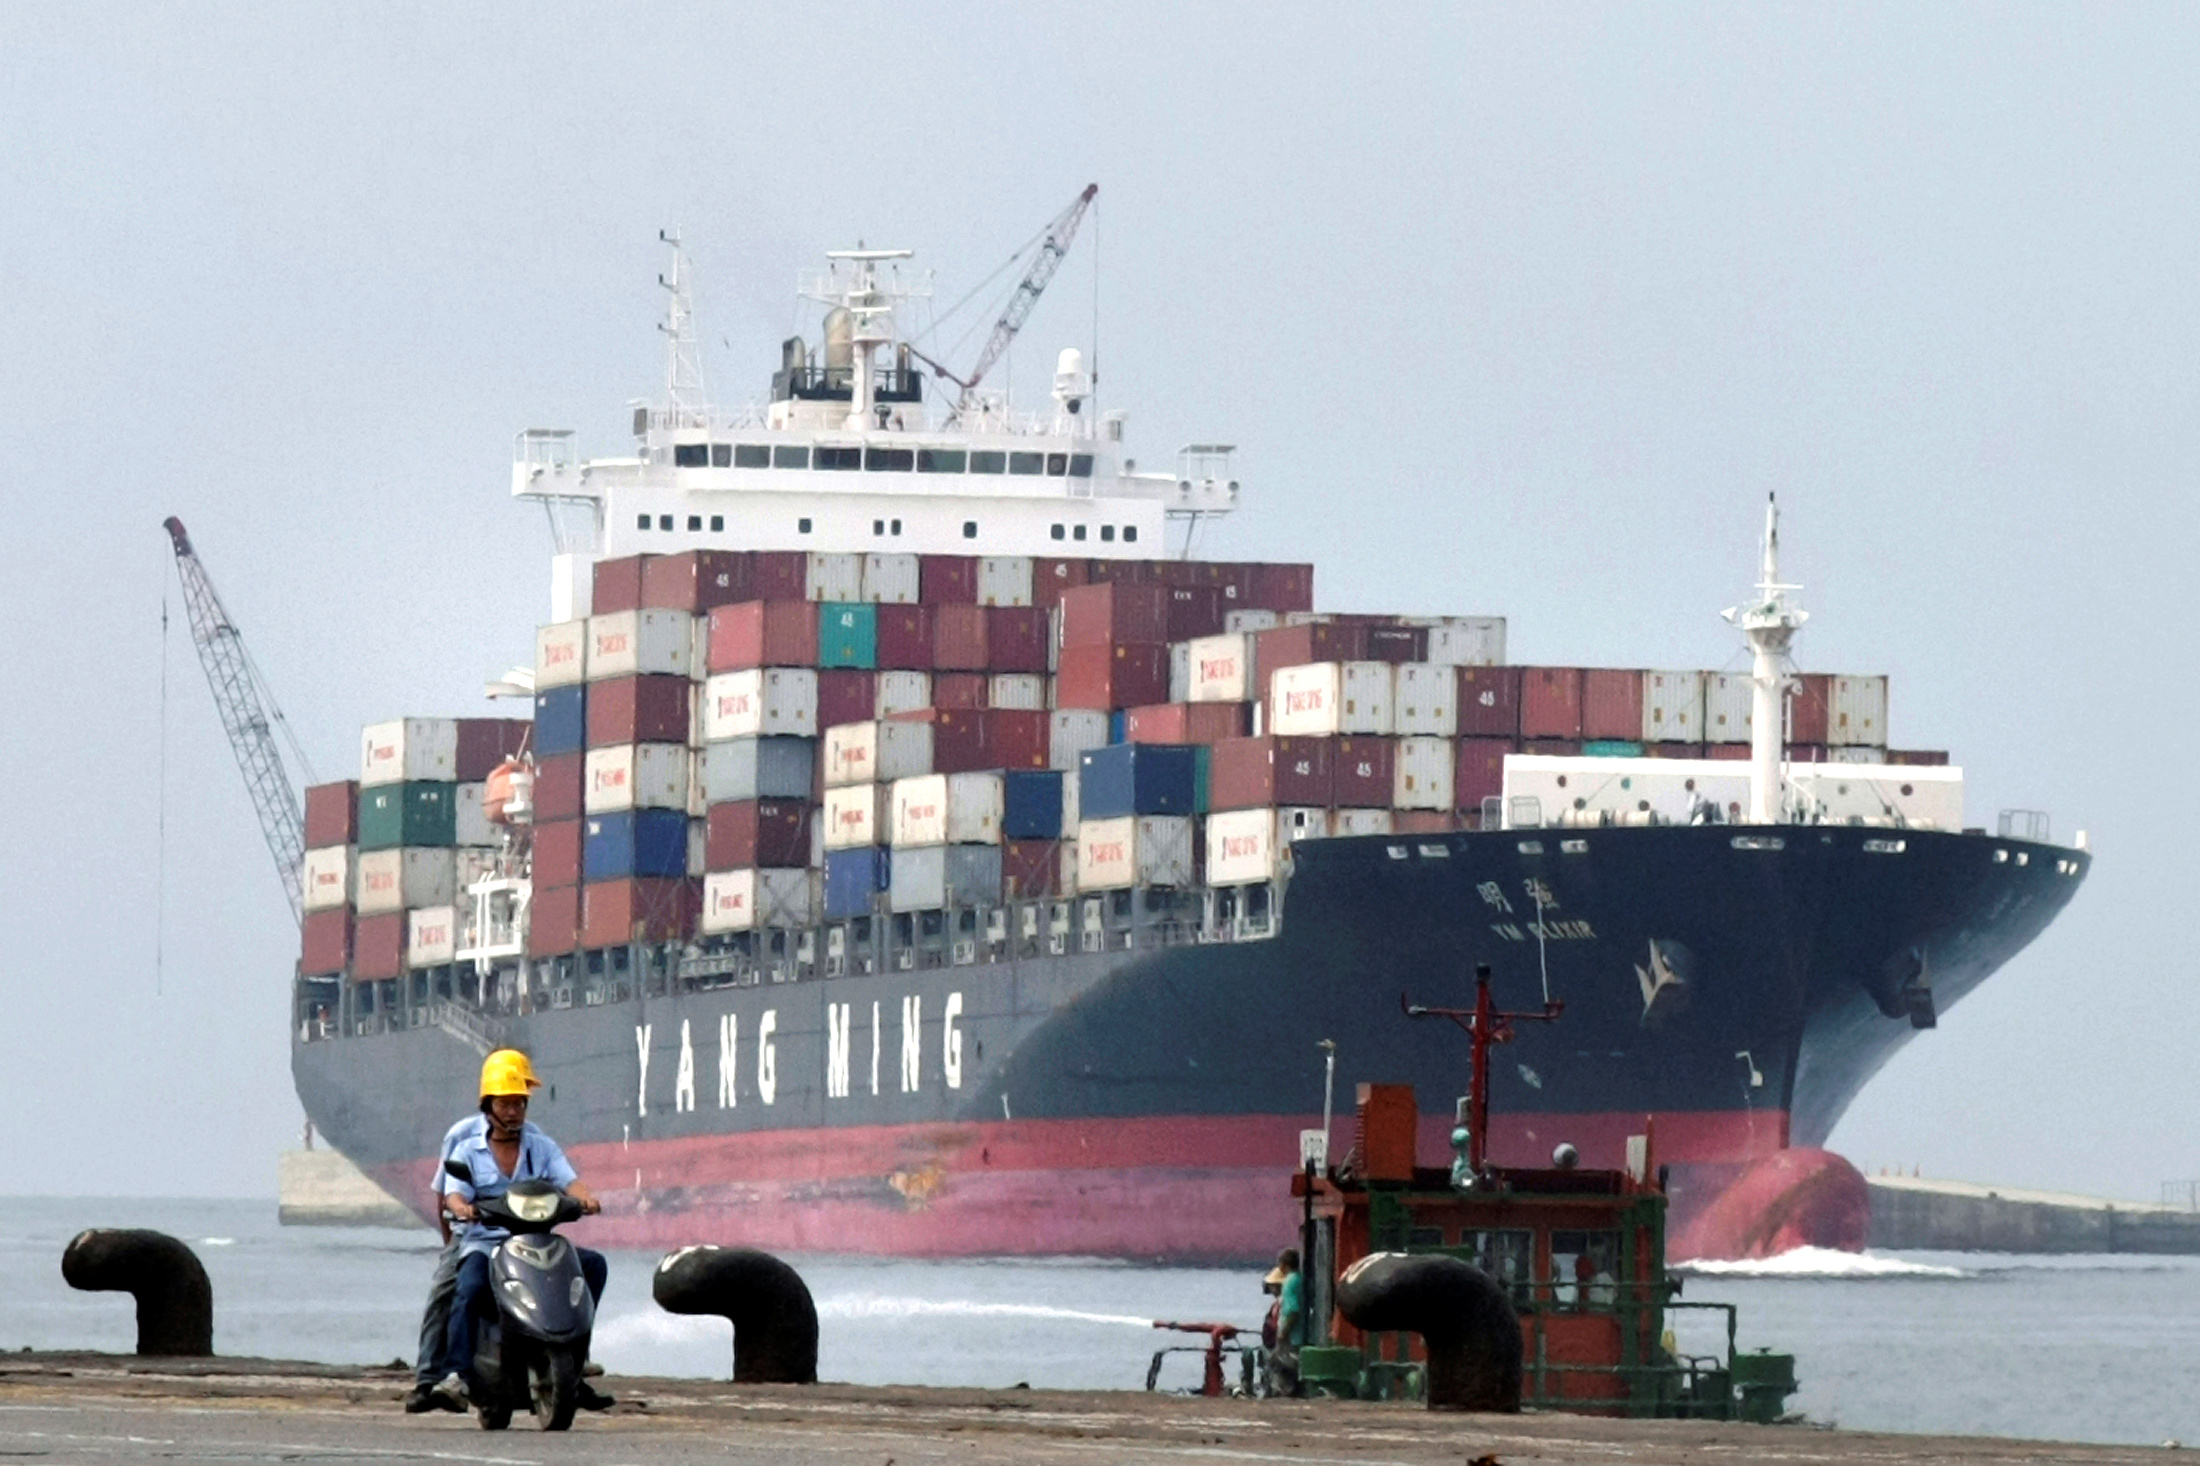 People ride a motorcycle while a container ship passes by at Keelung port in northern Taiwan July 20, 2010.   REUTERS/Pichi Chuang/File Photo